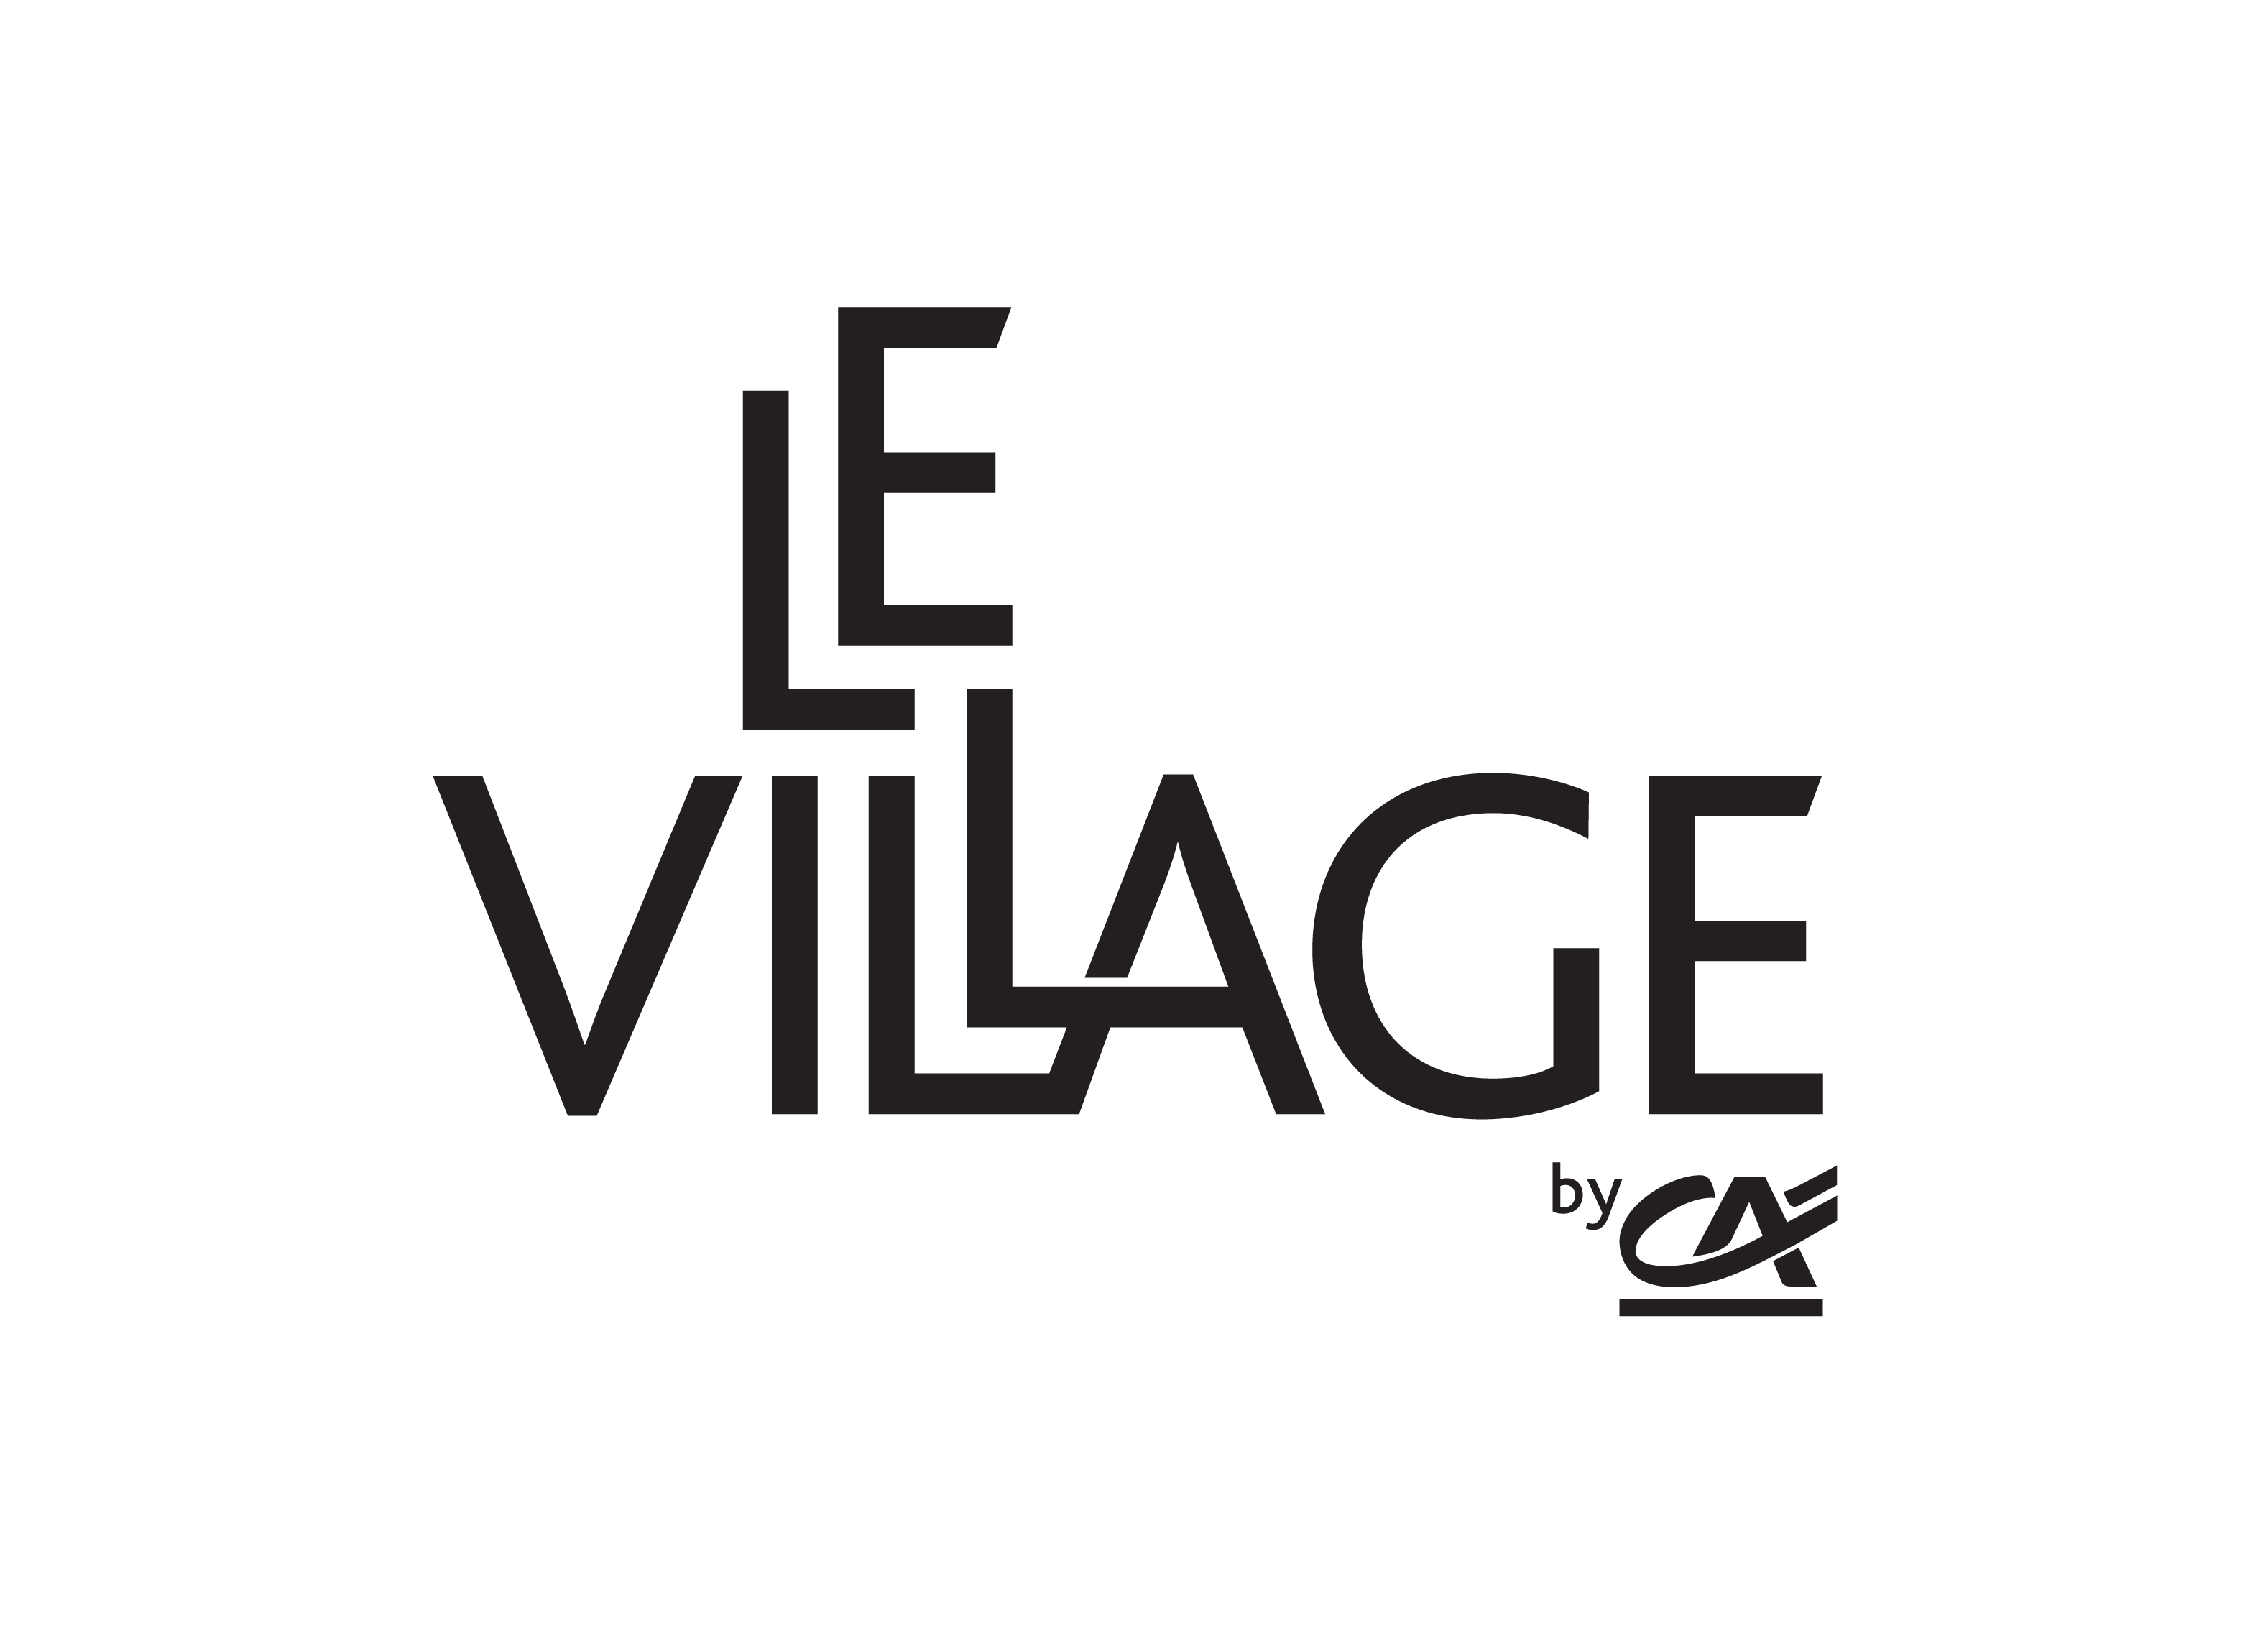 Inauguration Four Data - Le village by CA